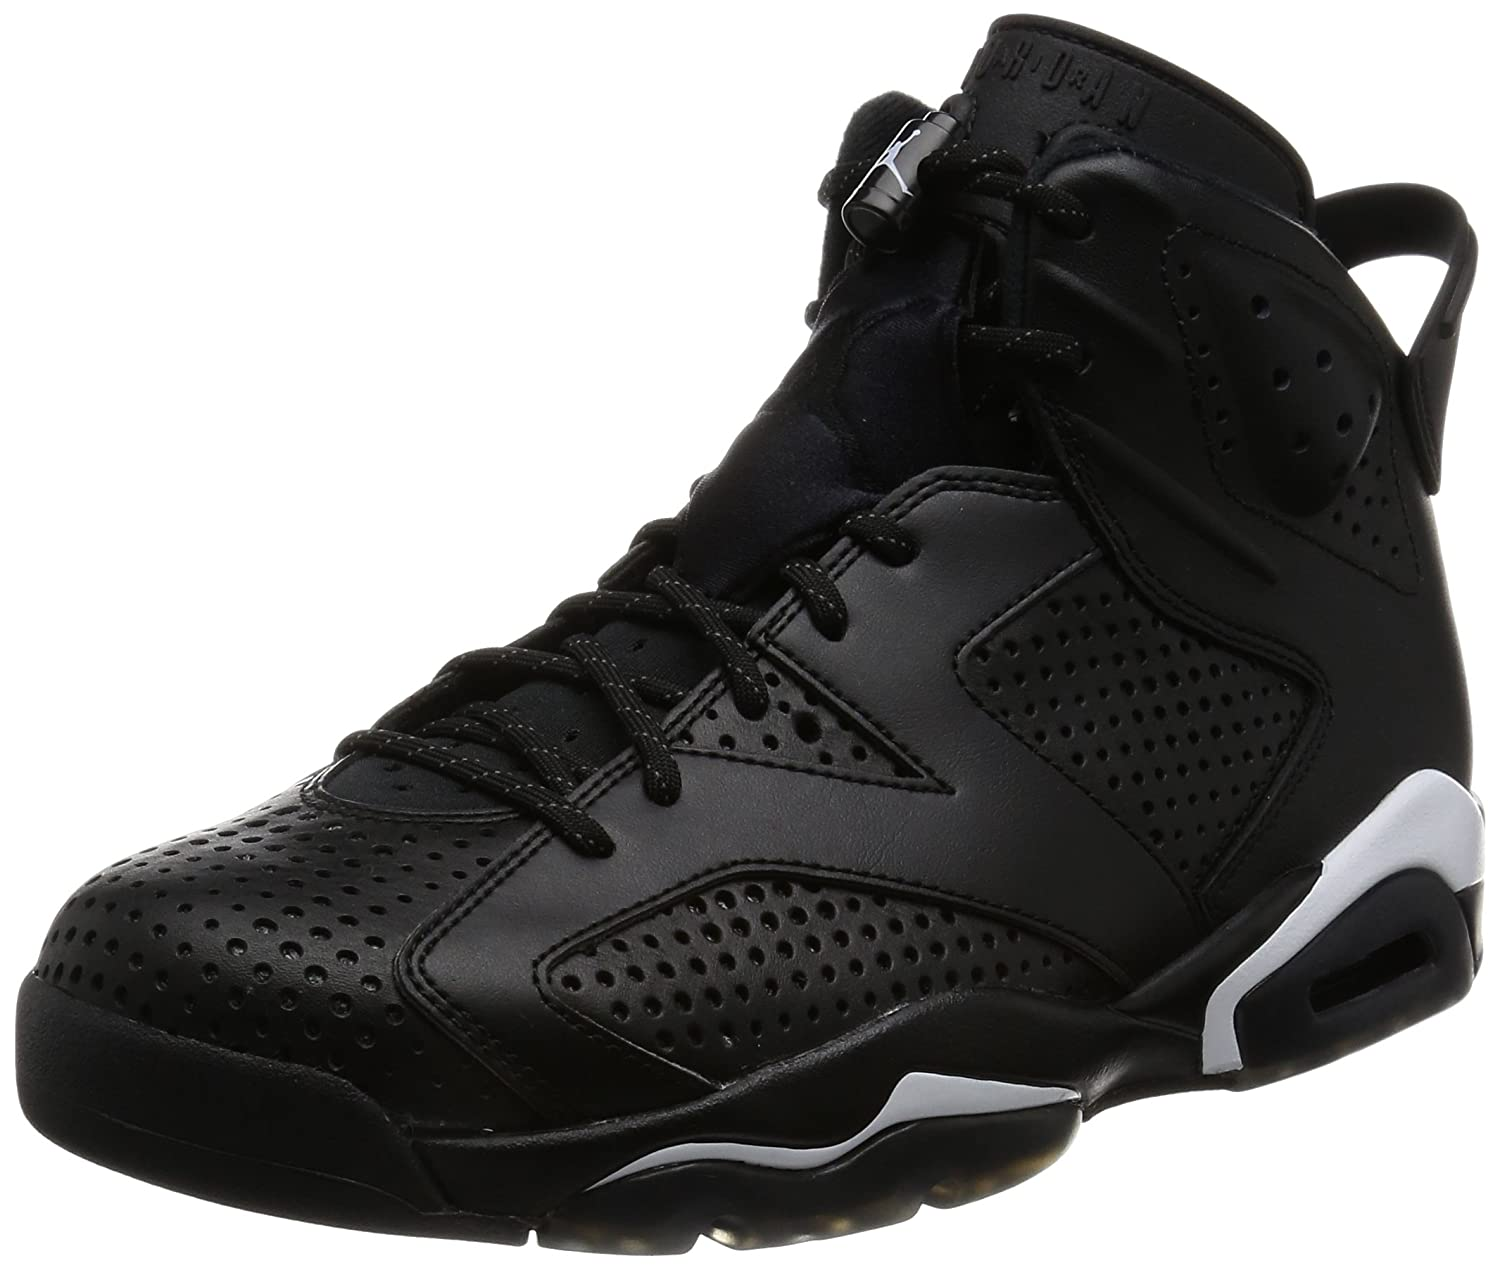 Air Jordan 6 Retro Black Cat – 384664 020